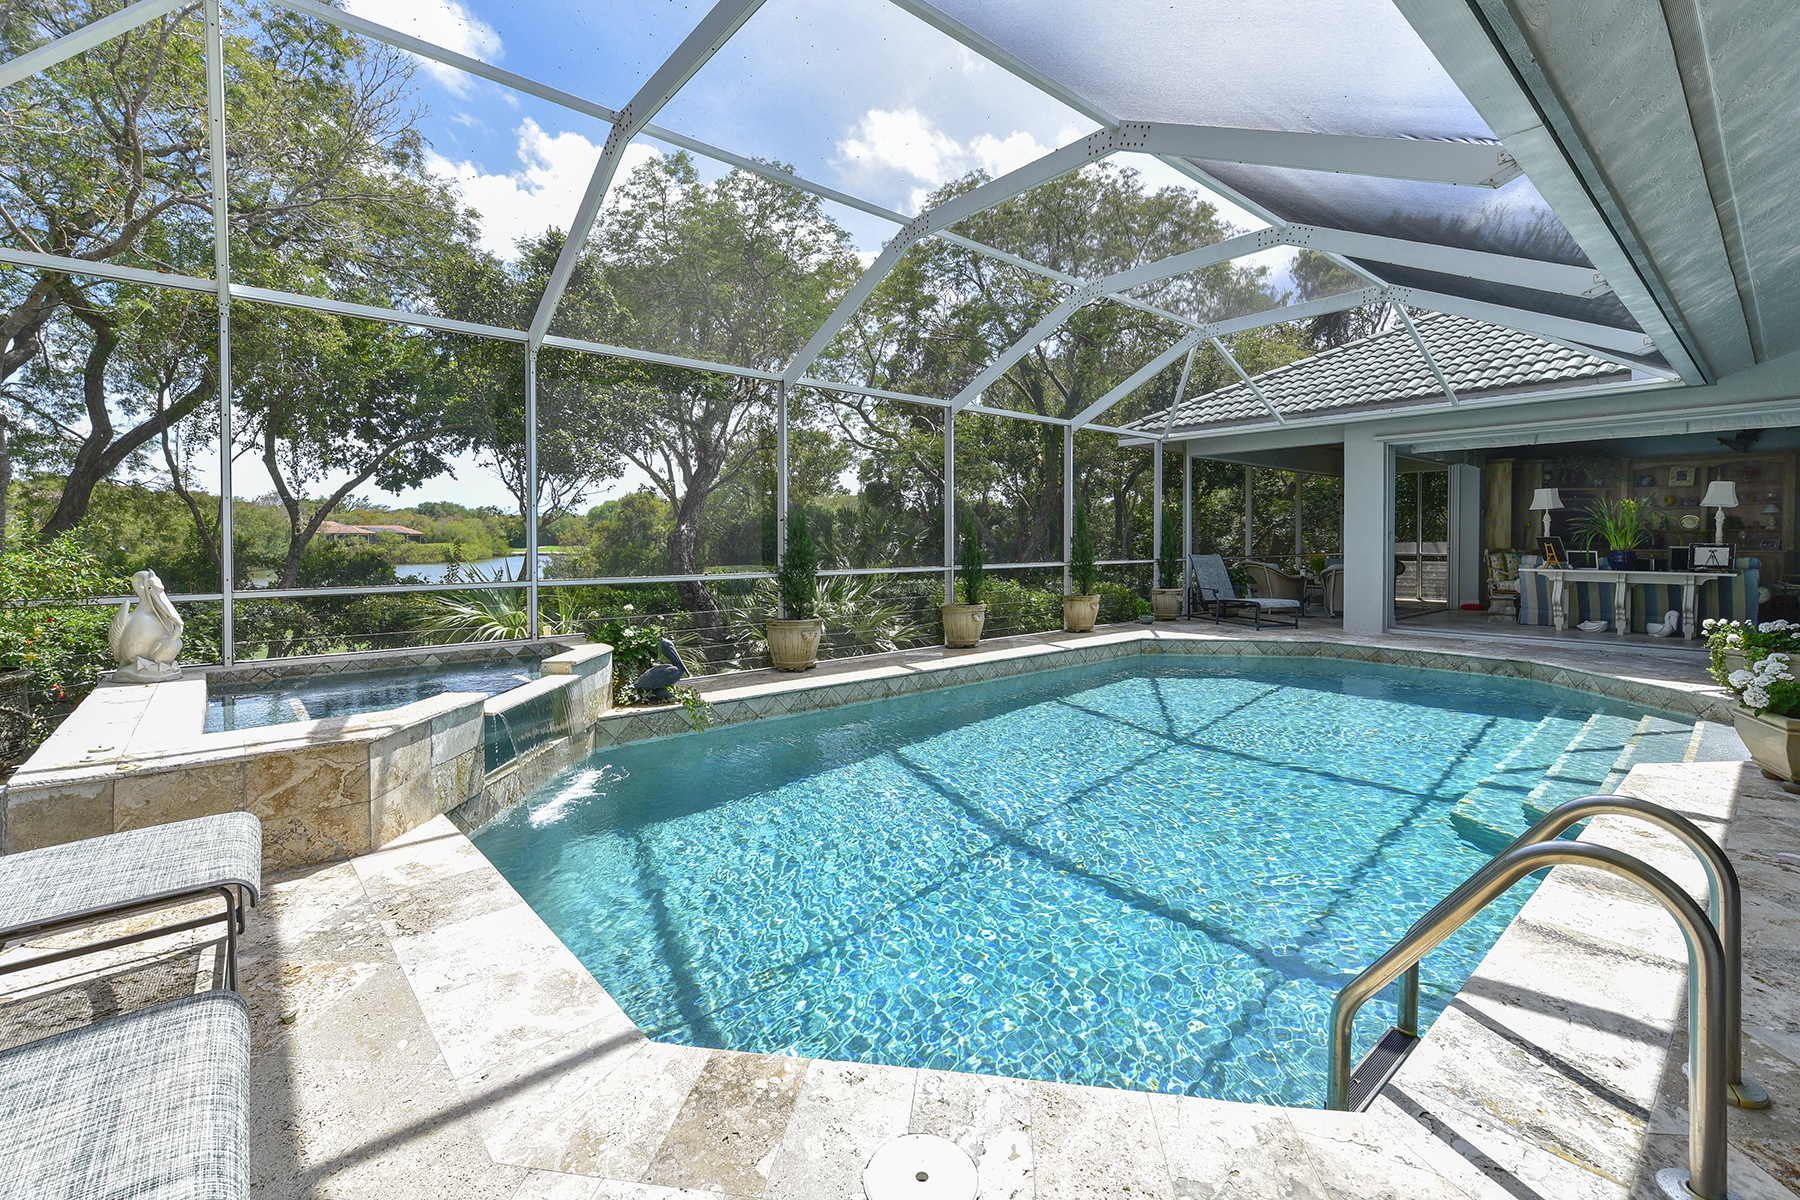 Single Family Home for Sale at Golf and Lakefront View Home at Ocean Reef 18 Cinnamon Bark Lane Key Largo, Florida 33037 United States